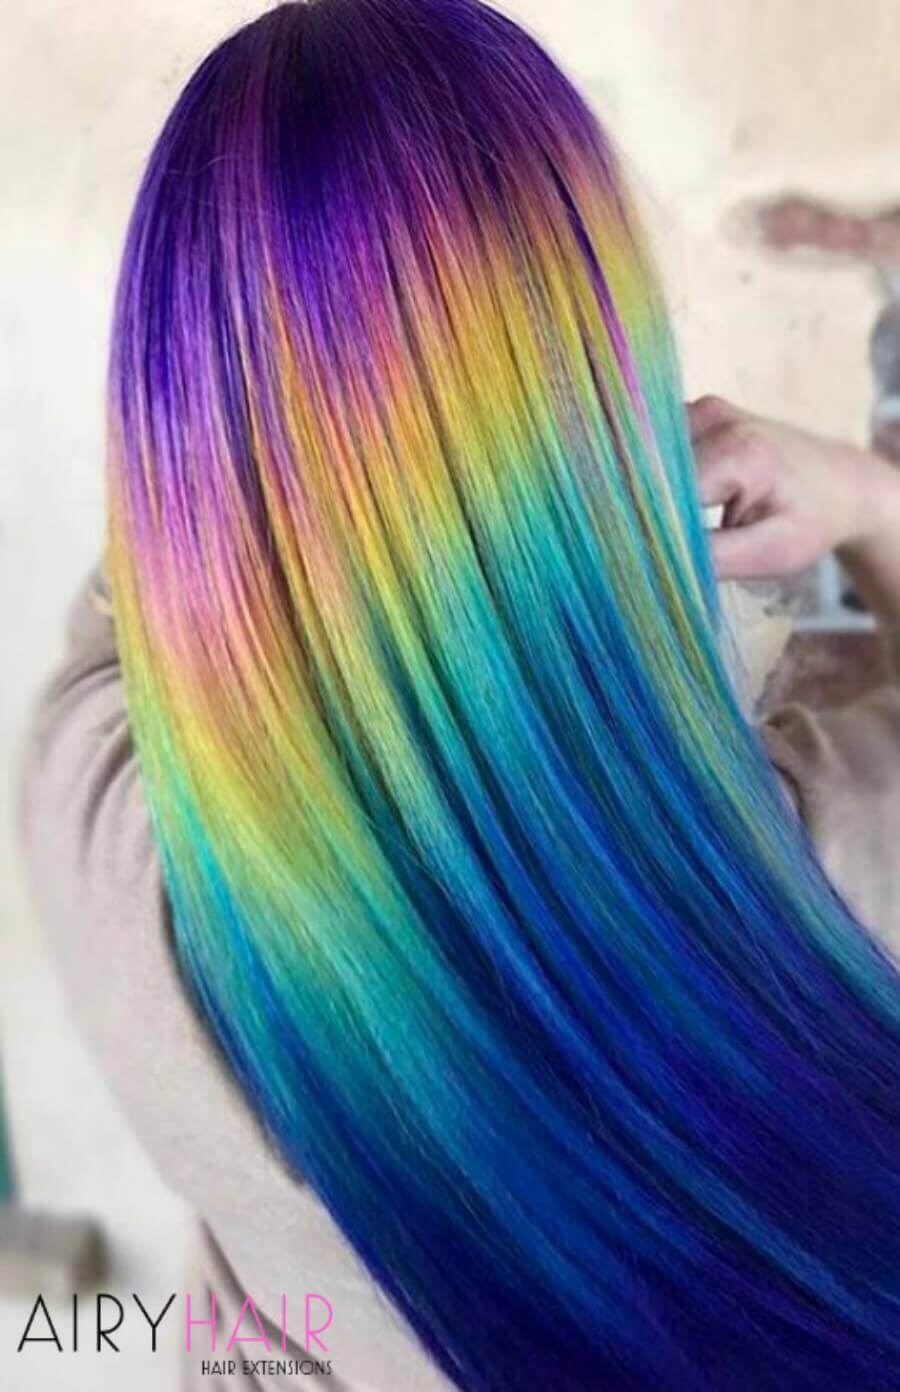 30 Best Colorful Party and Halloween Hairstyle Ideas